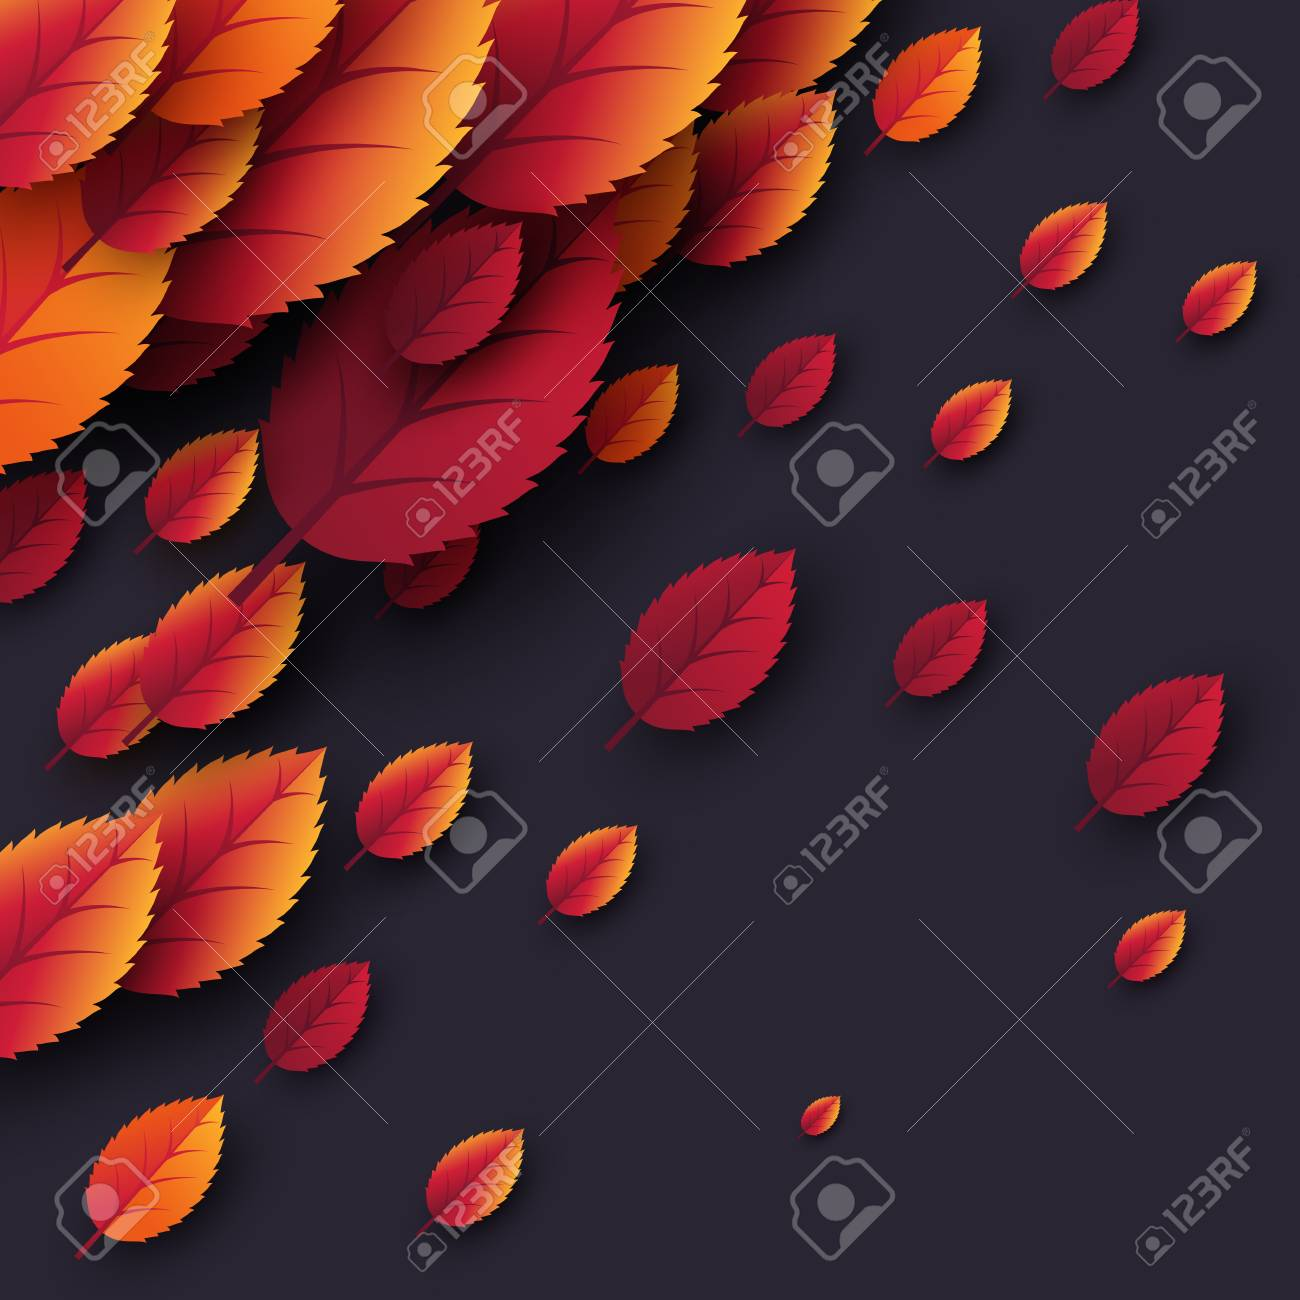 3d Realistic Autumn Fall Leaves Autumnal Background In Dark Colors Design For Web Print Wallpaper Vector Illustration